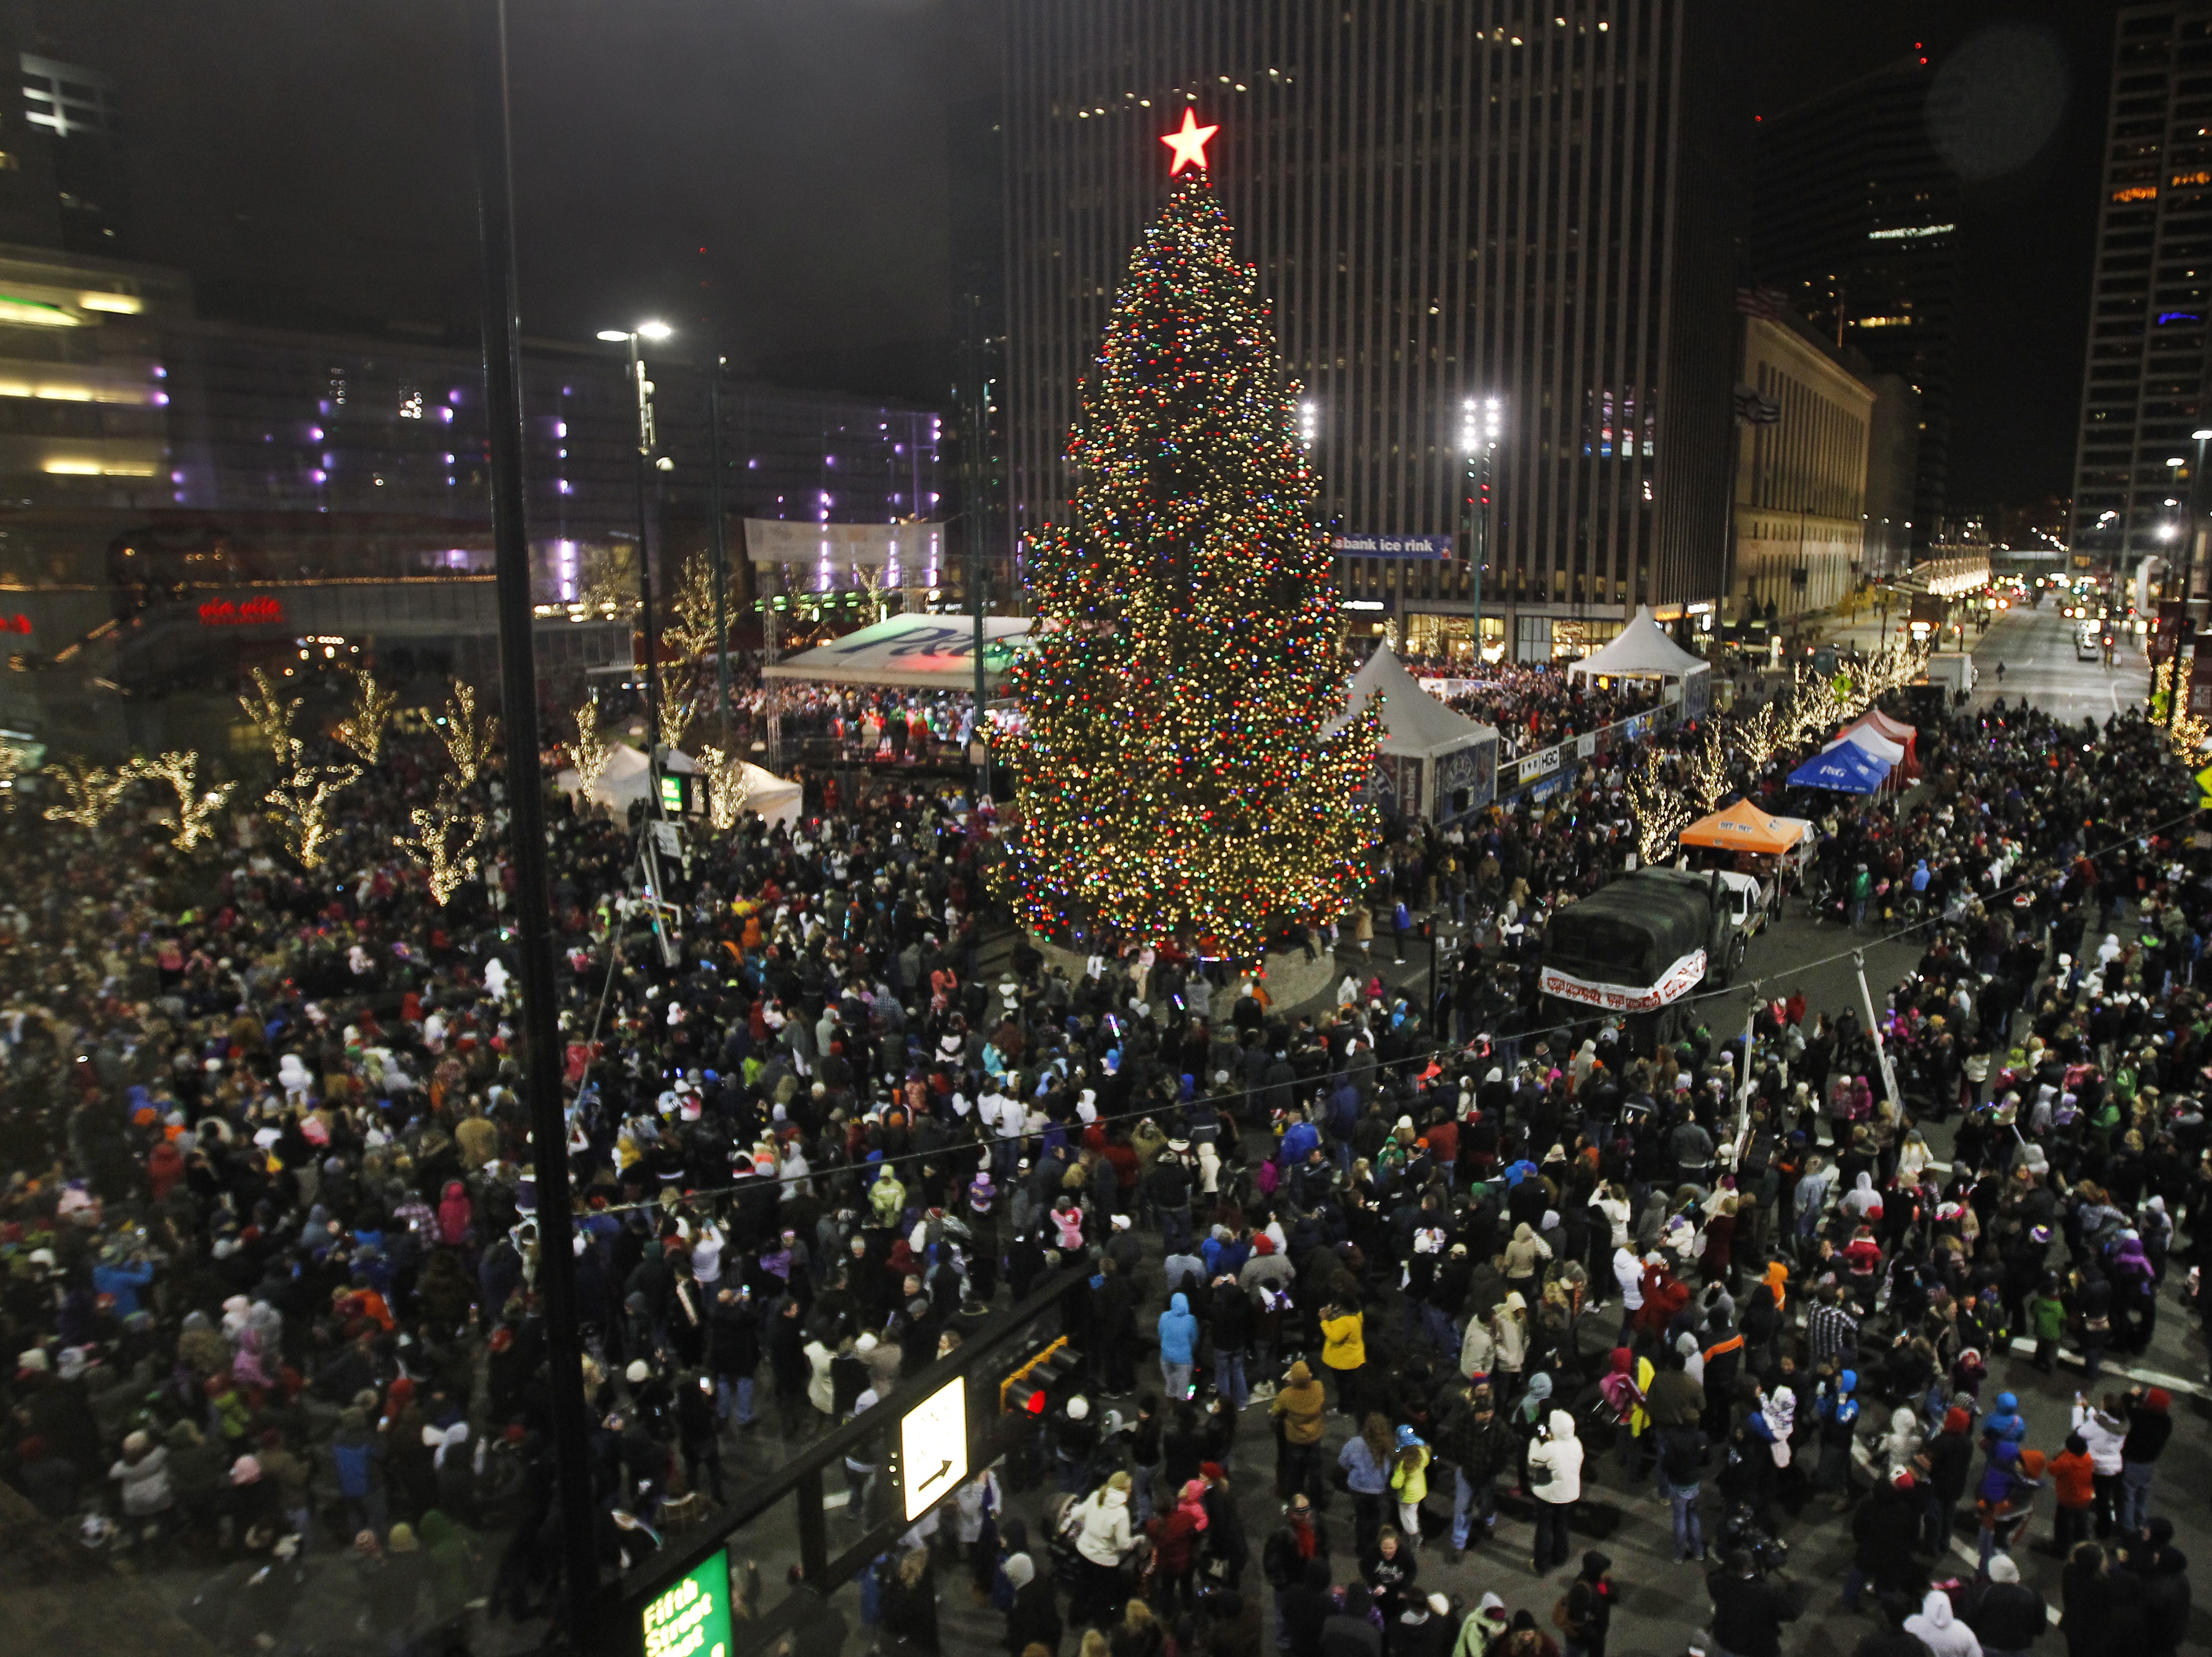 2012: The giant Christmas tree lit up Fountain Square during the Macy's Light up the Square downtown.